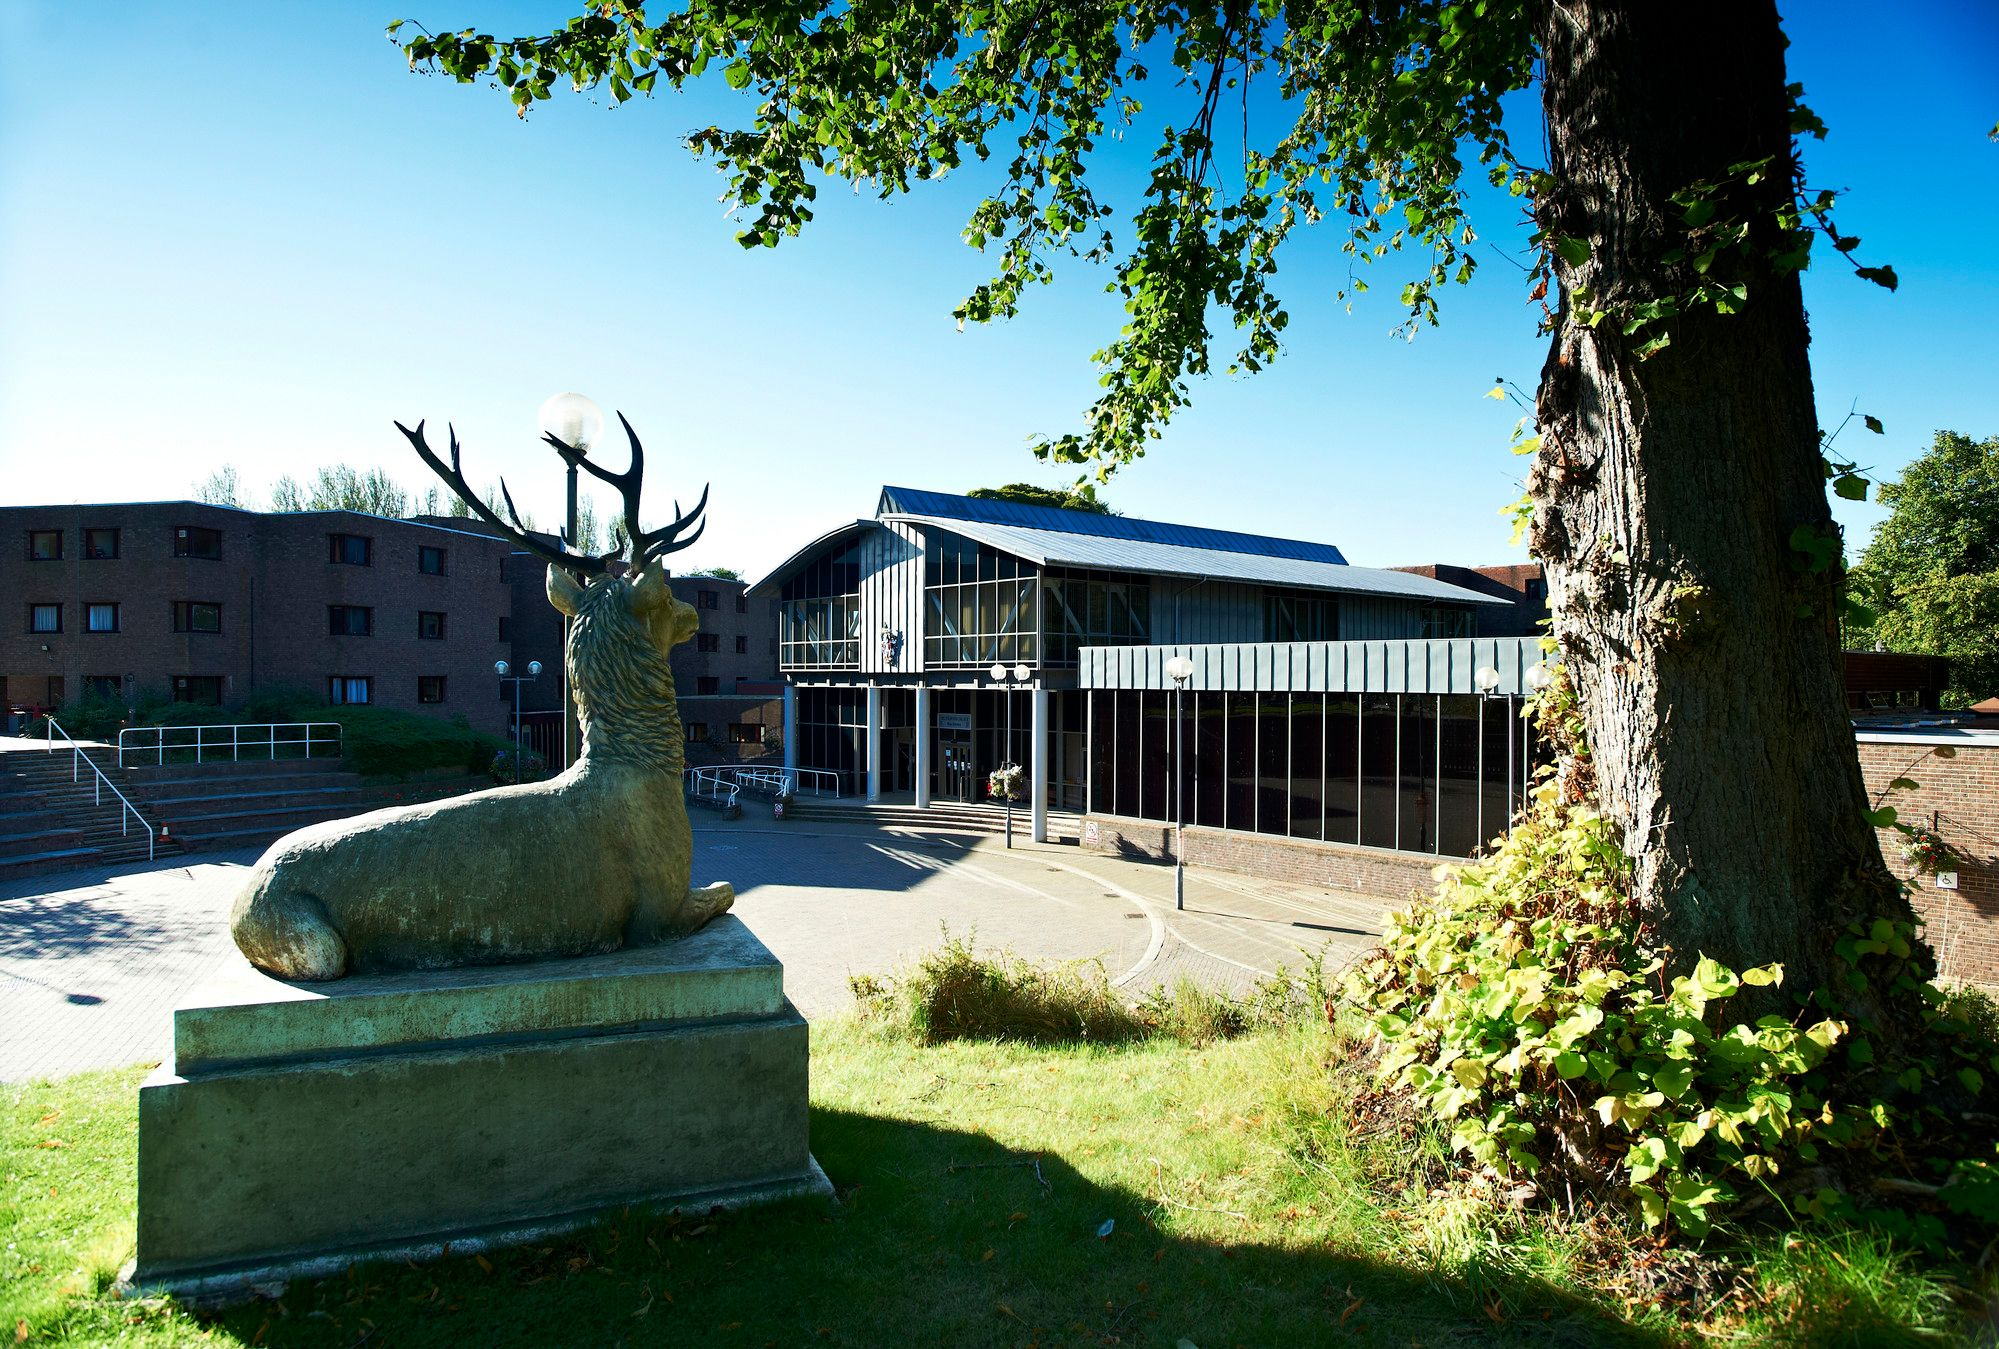 Collingwood College external view with stag statue